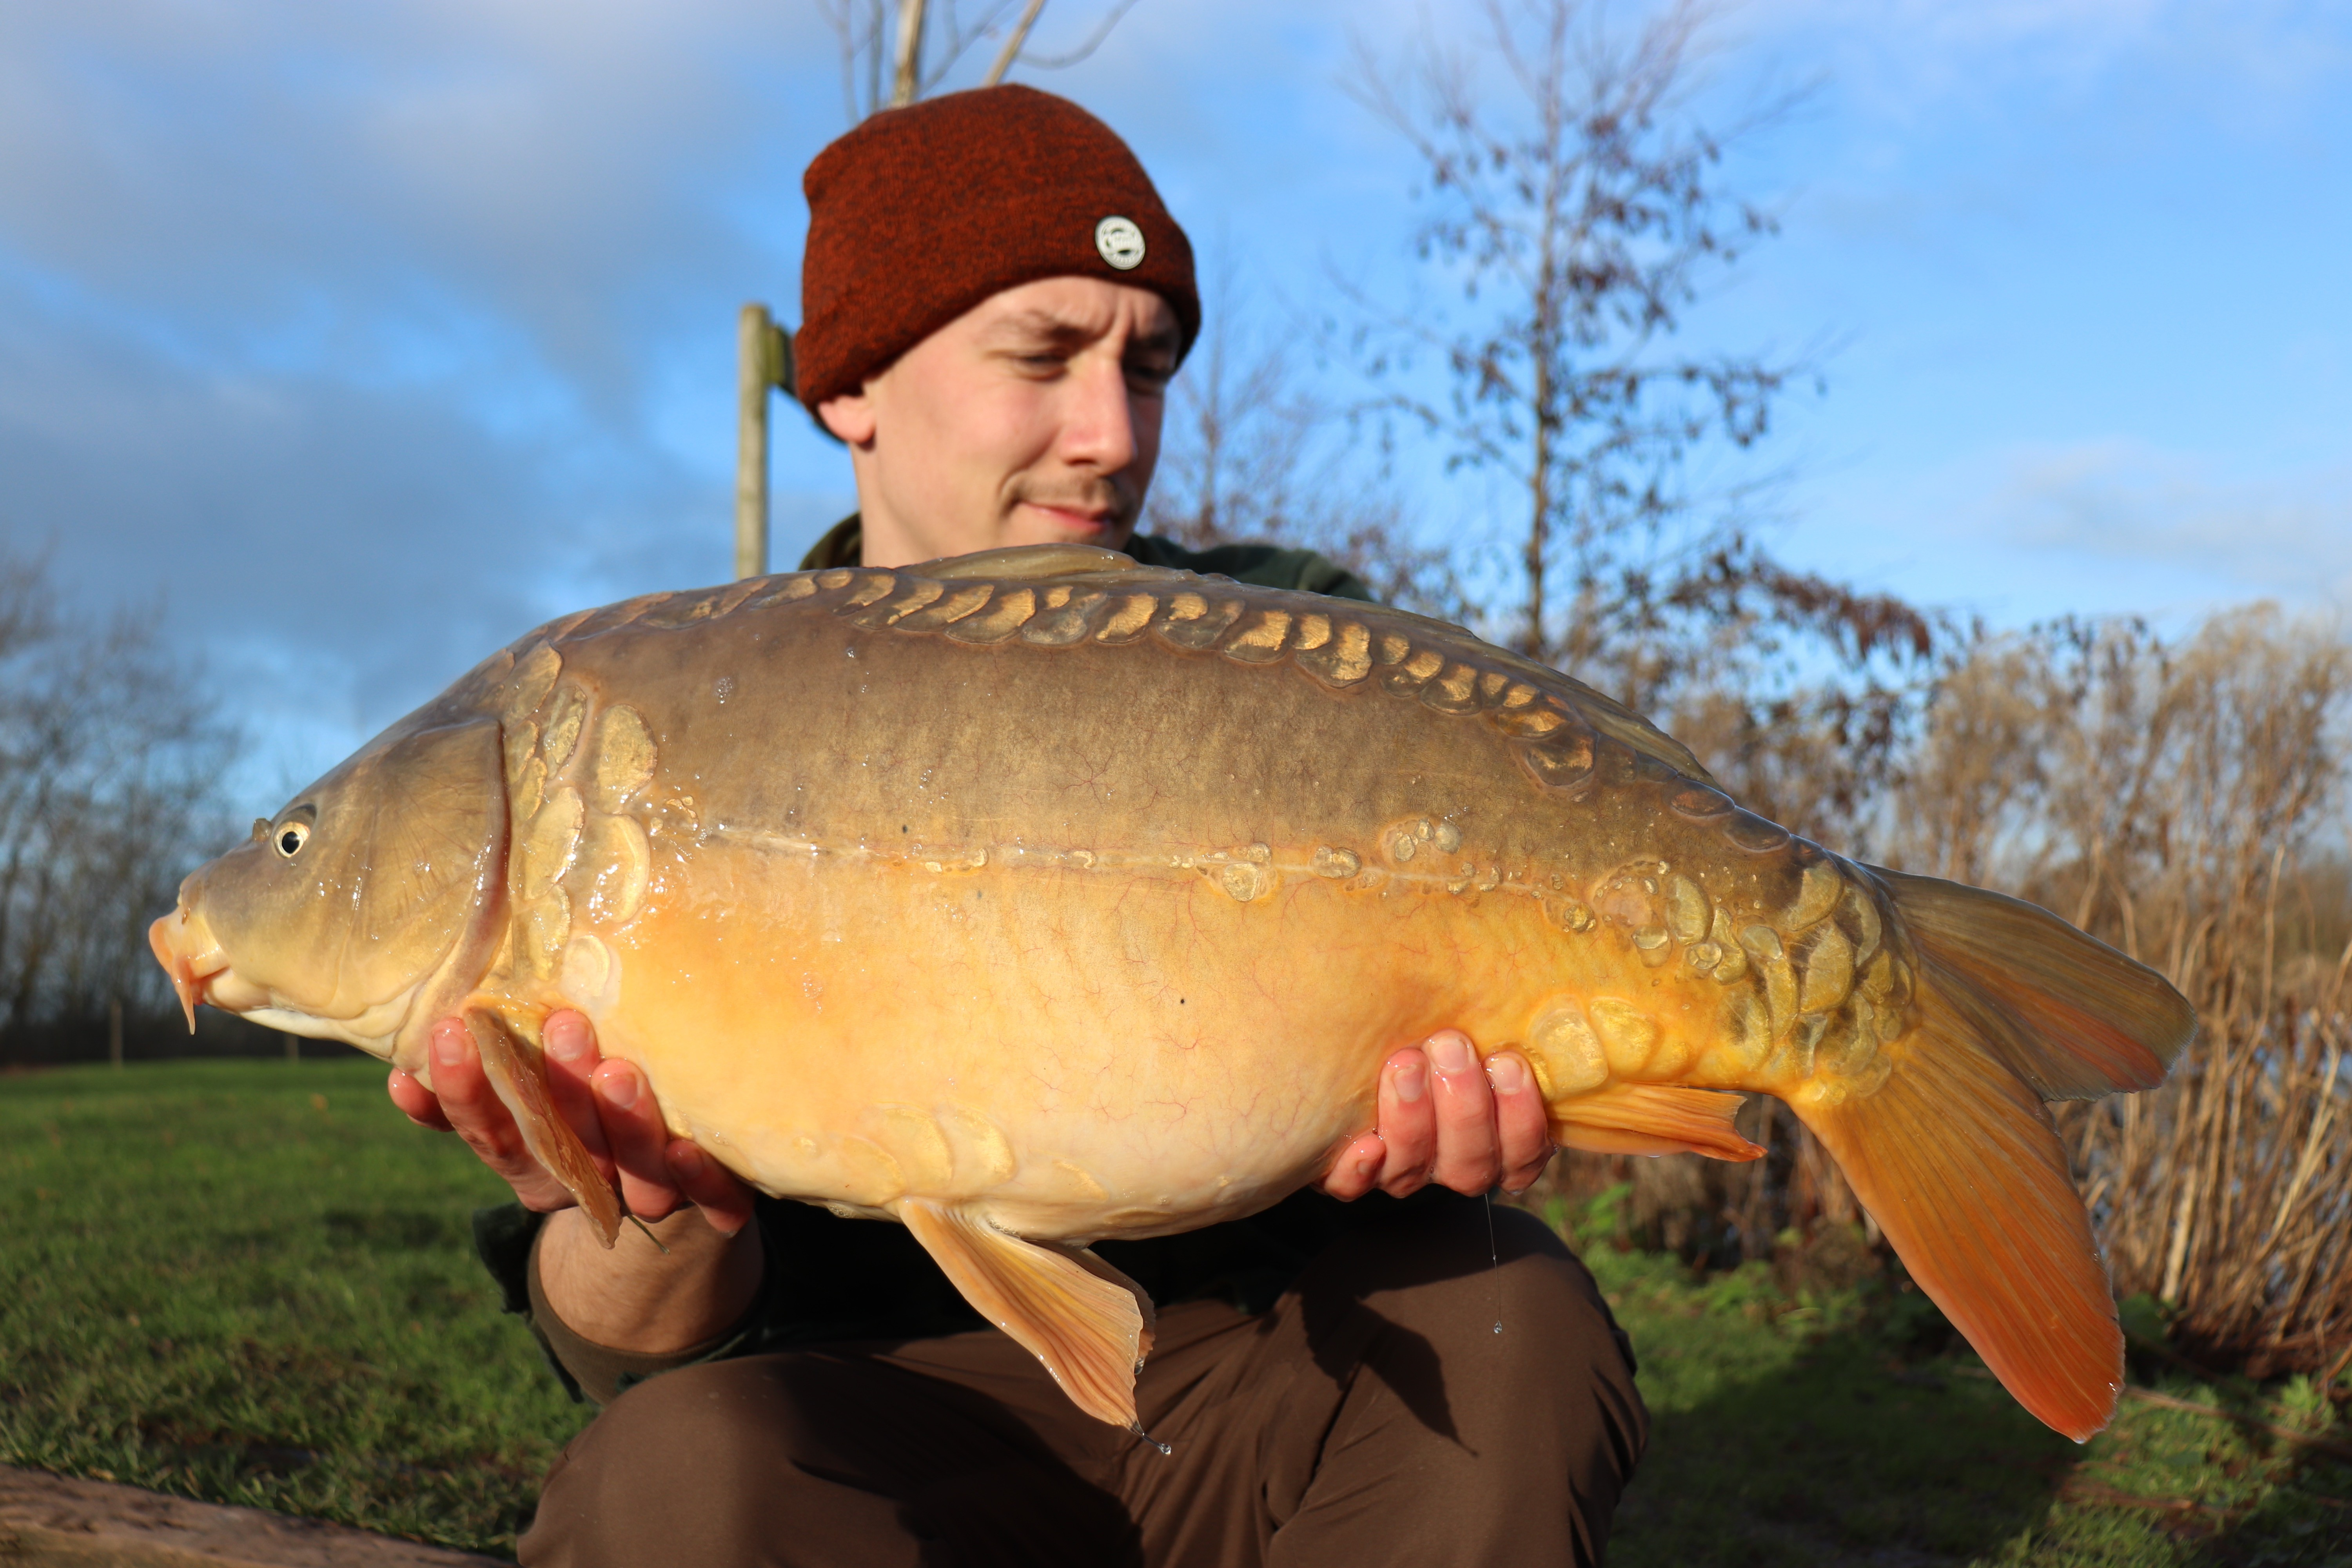 24lb 08oz  caught on 8kg of Boilies, corn and maggots